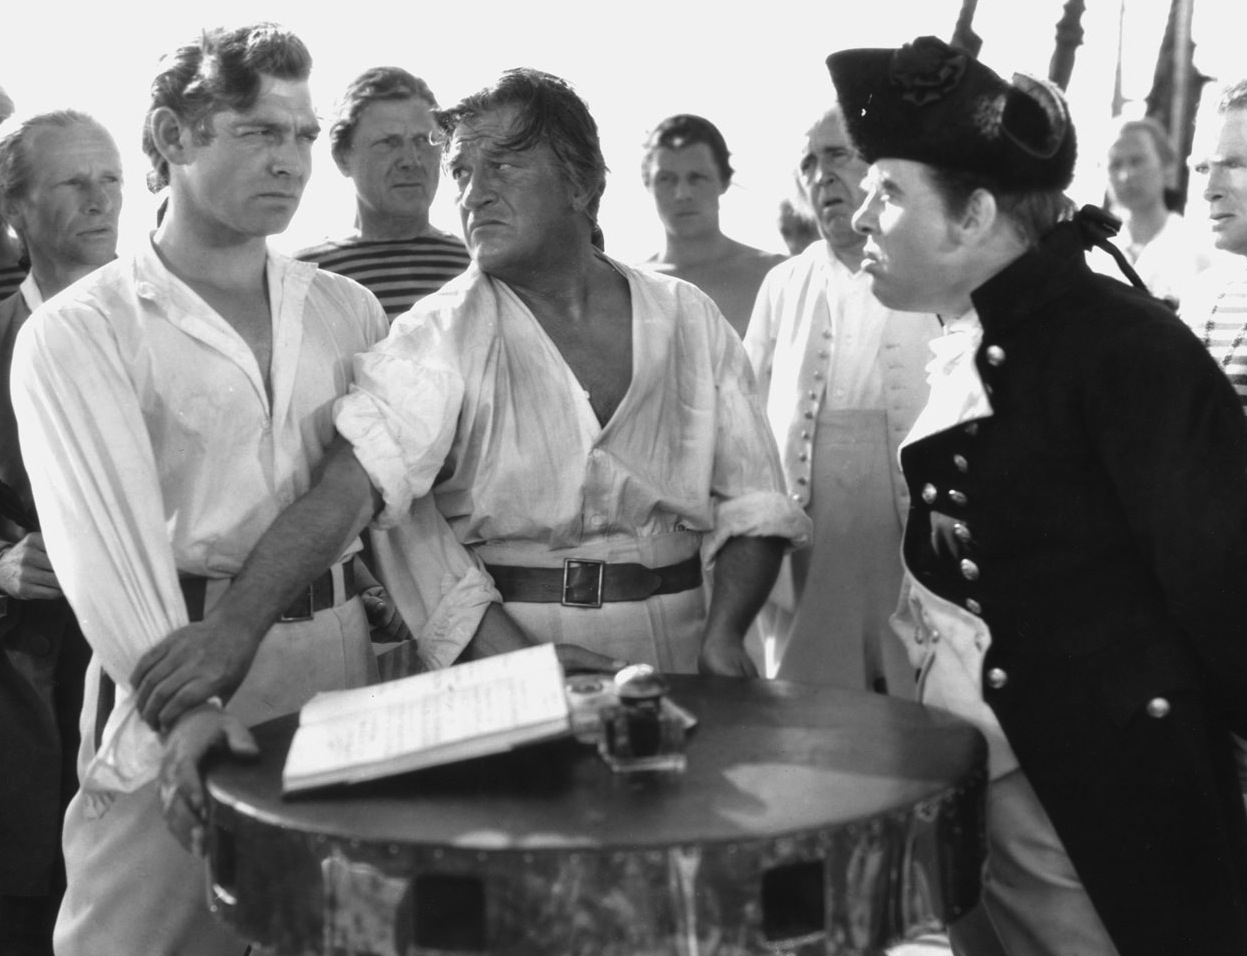 Clark Gable, left and Charles Laughton, far right, in the 1935 Mutiny on the Bounty